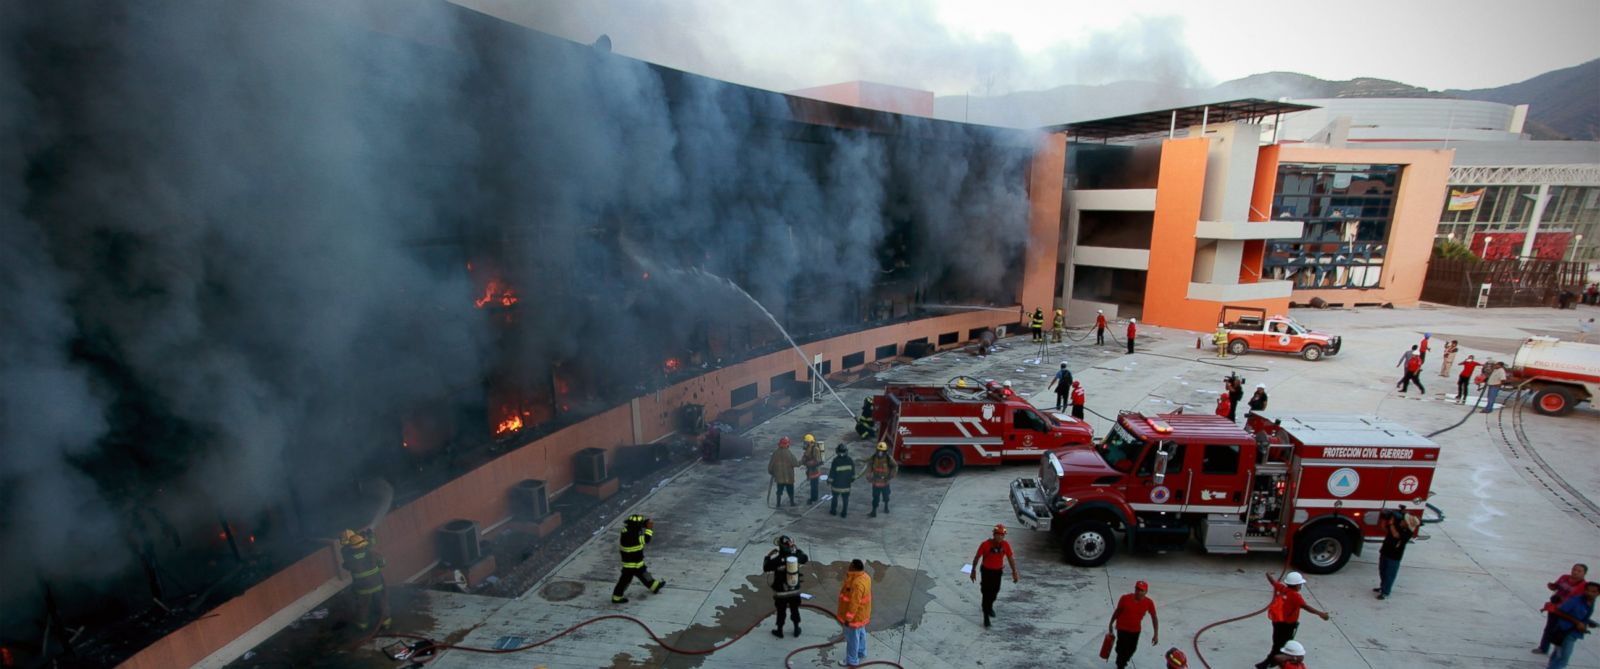 PHOTO: Firefighters try to extinguish the flames after the state capital building was set on fire by protesting college students in Chilpancingo, Mexico, Oct. 13, 2014.